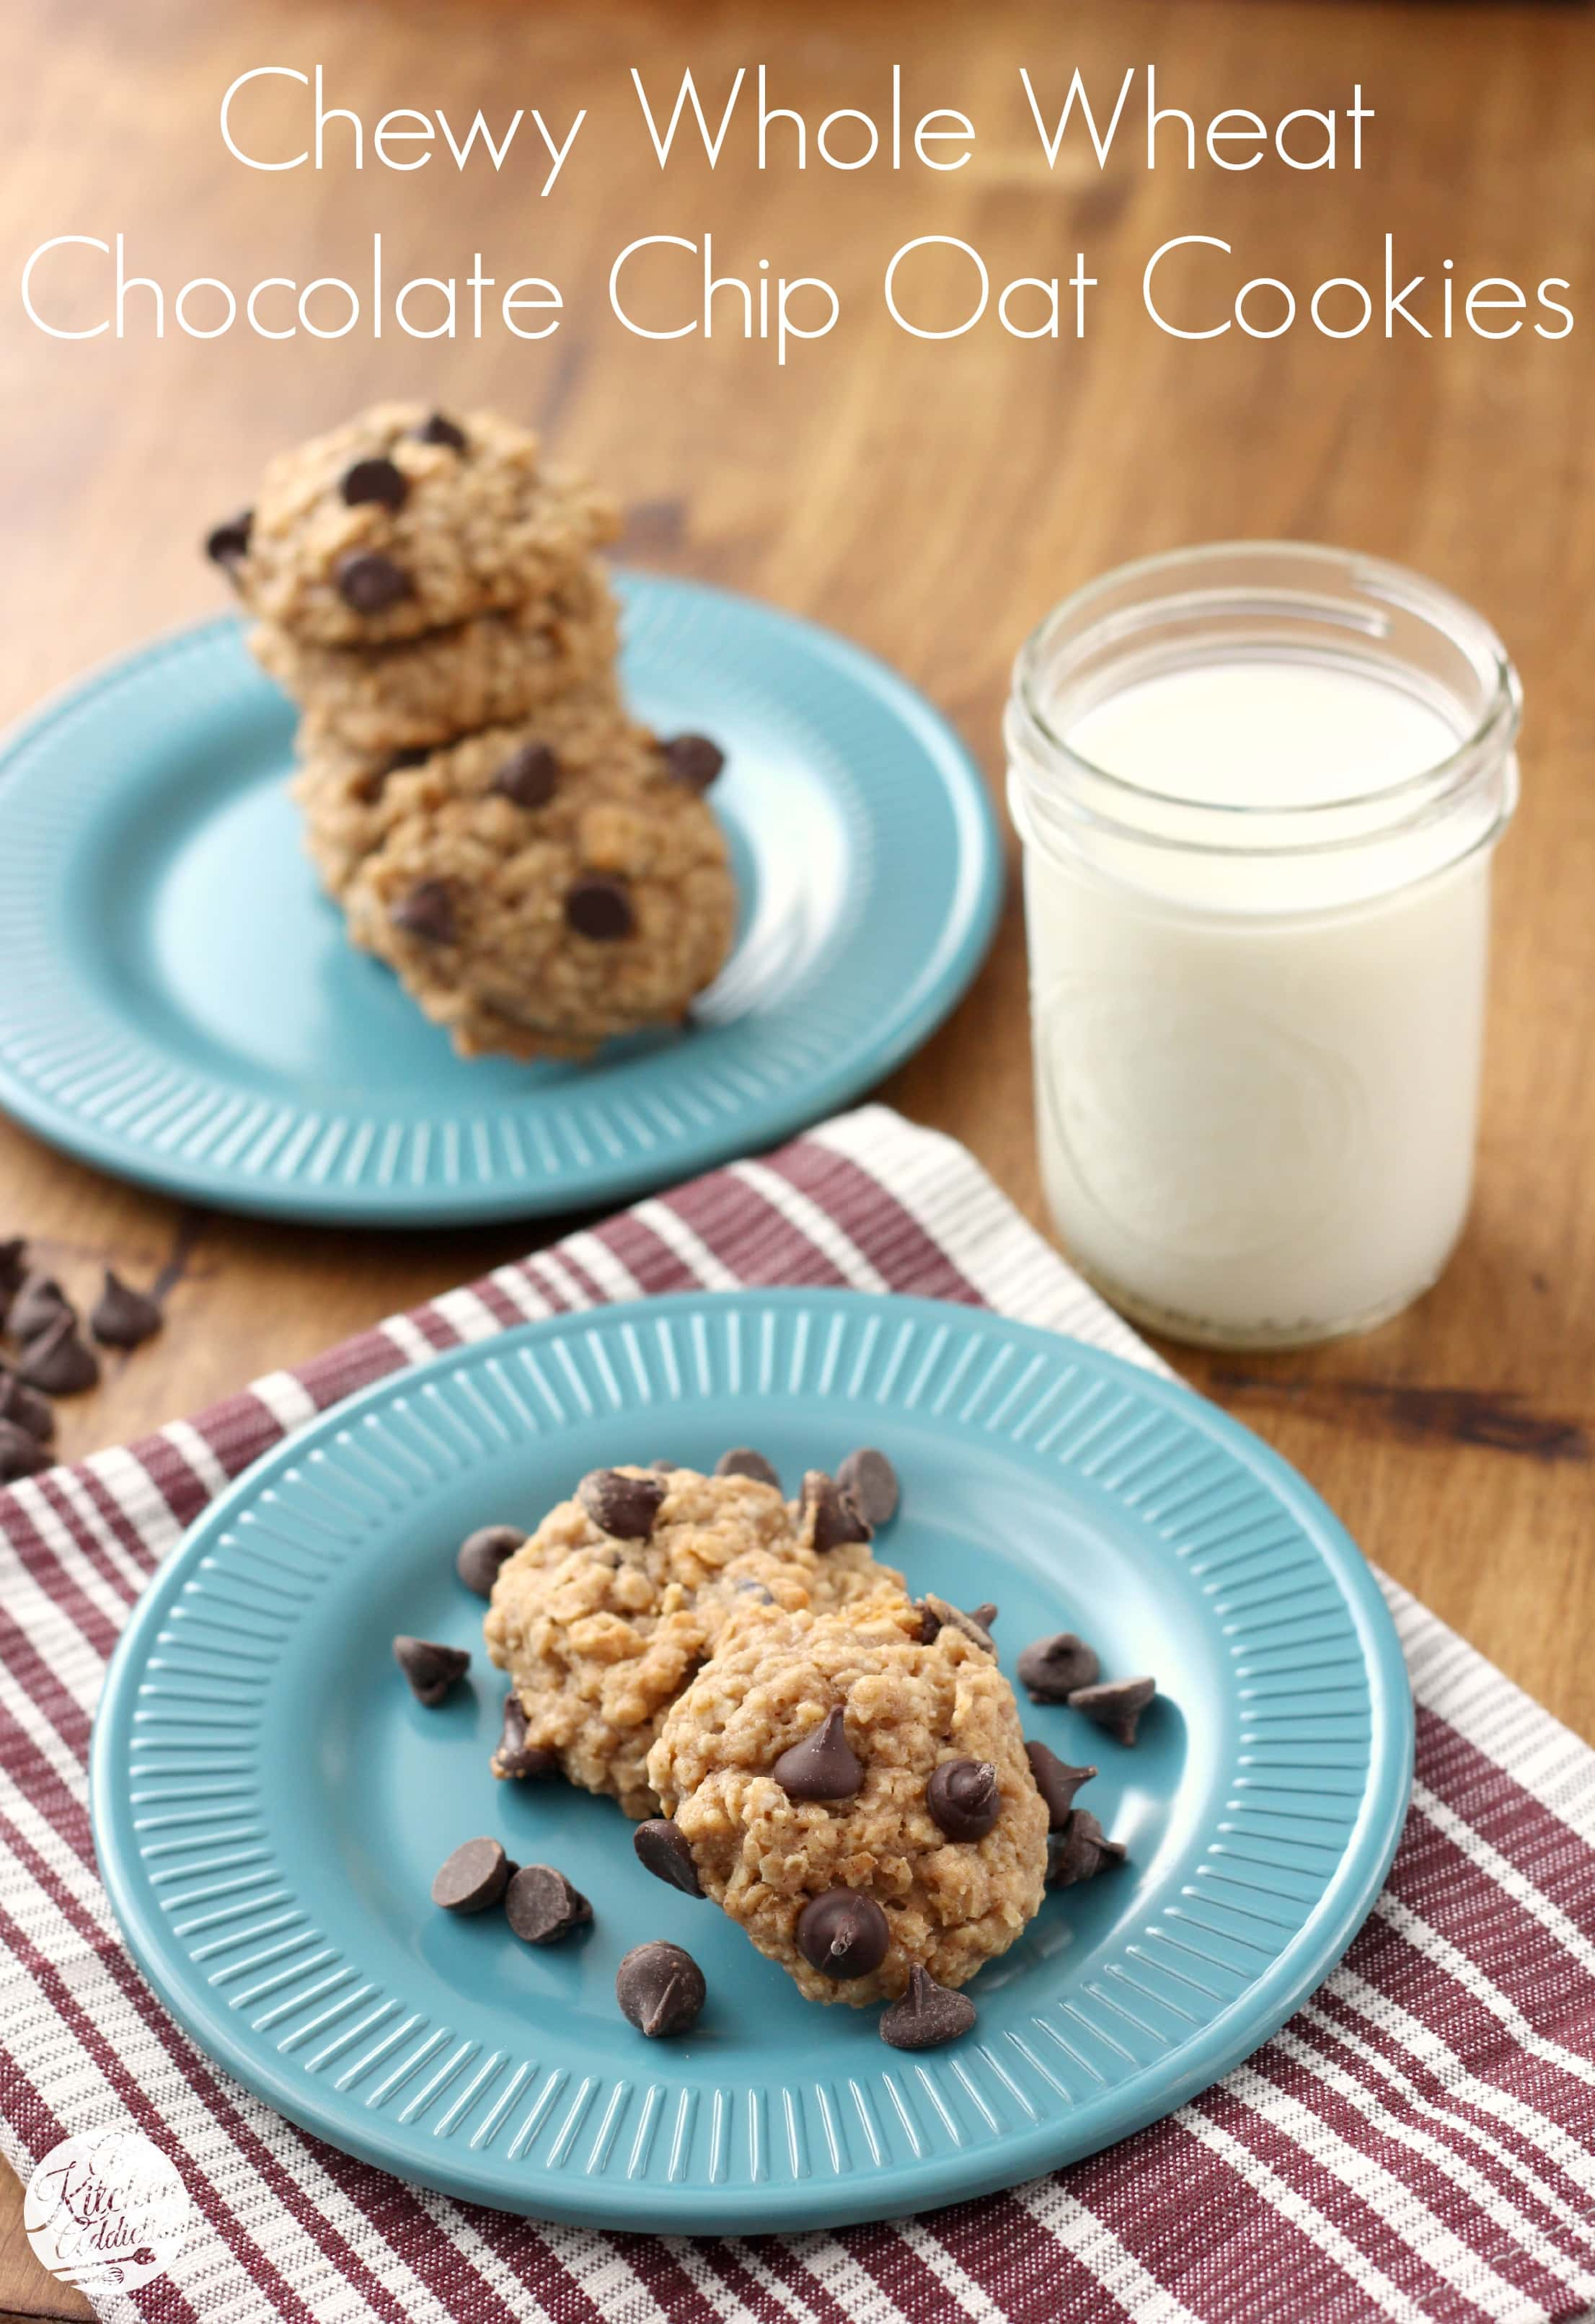 Chewy Whole Wheat Chocolate Chip Oatmeal Cookies Recipe L A Kitchen Addiction